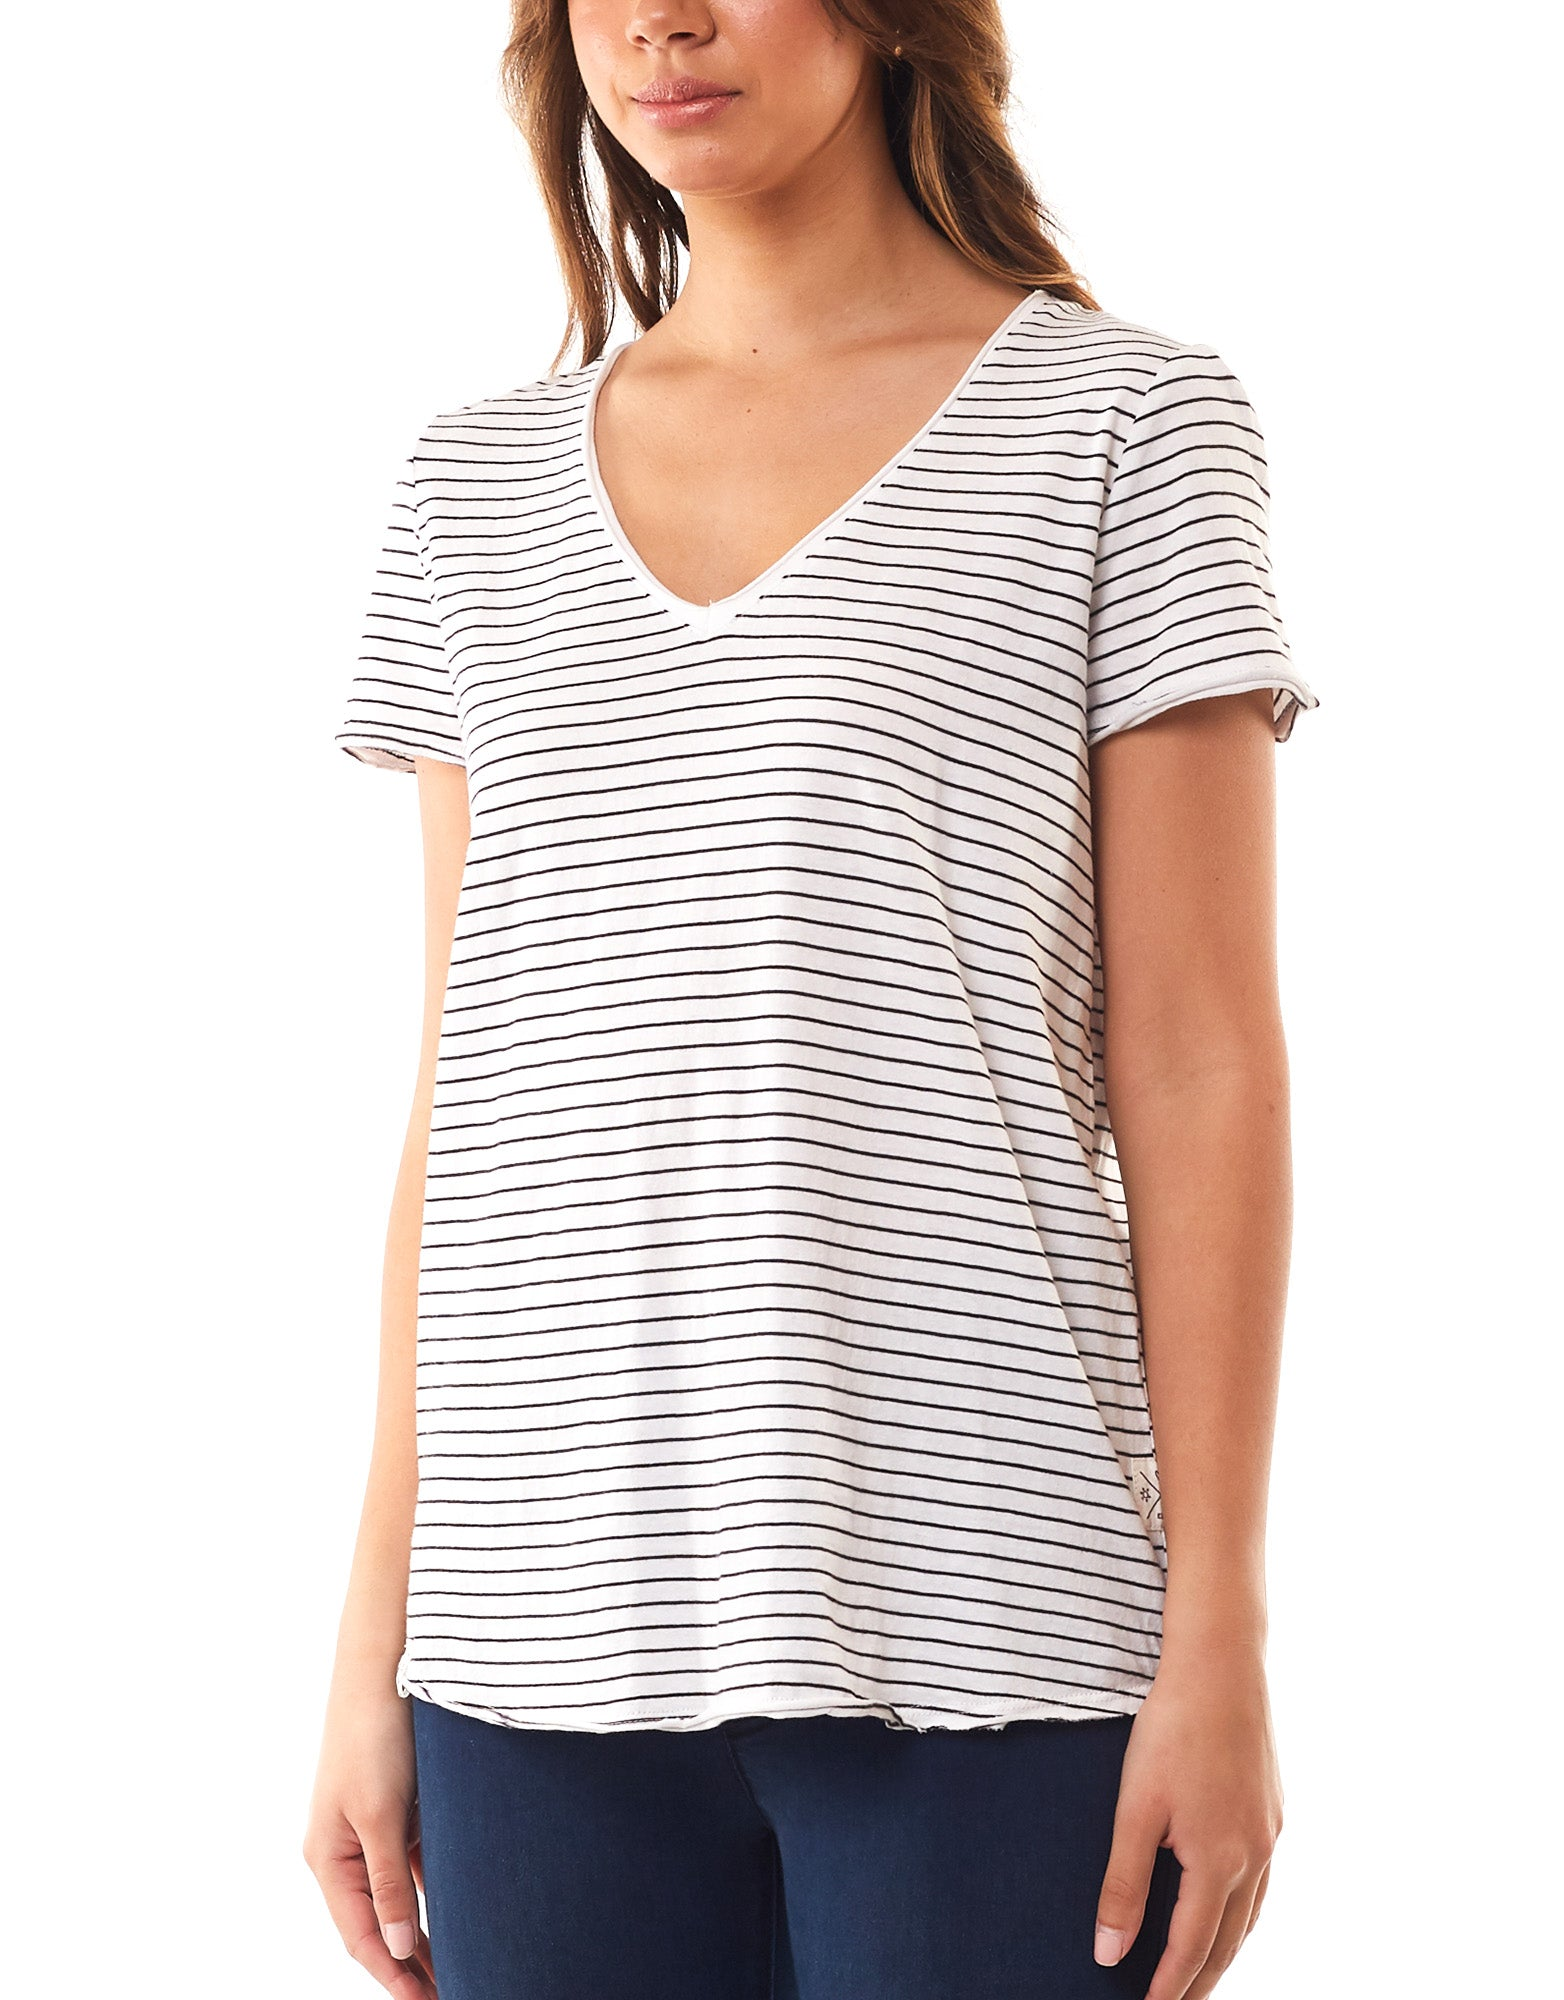 Elm - Fundamental Vee Tee - Stripe